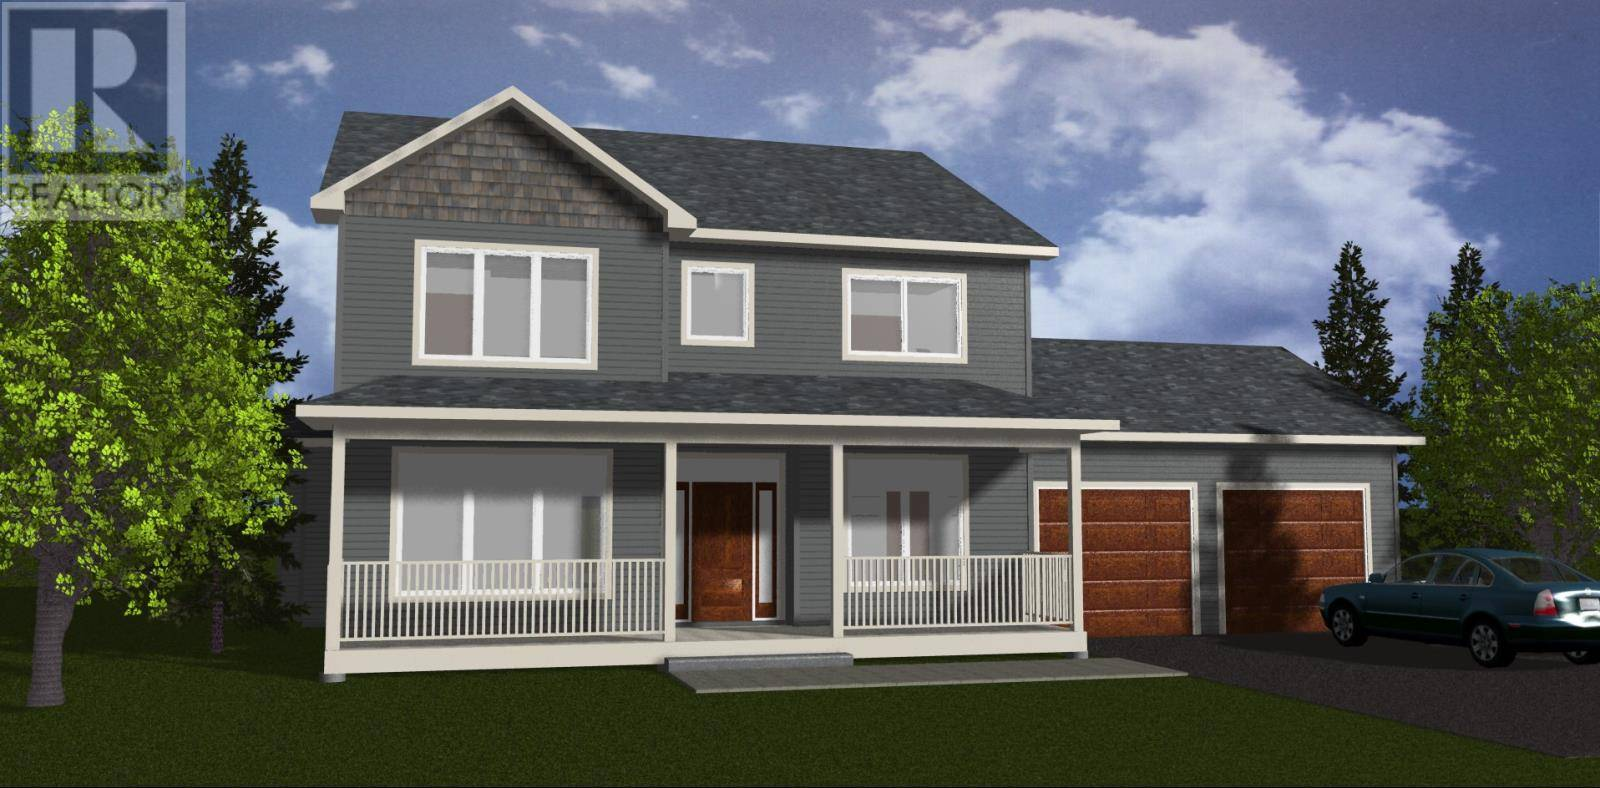 House for sale at 10 Sparta Pl Portugal Cove - St. Philips Newfoundland - MLS: 1205113